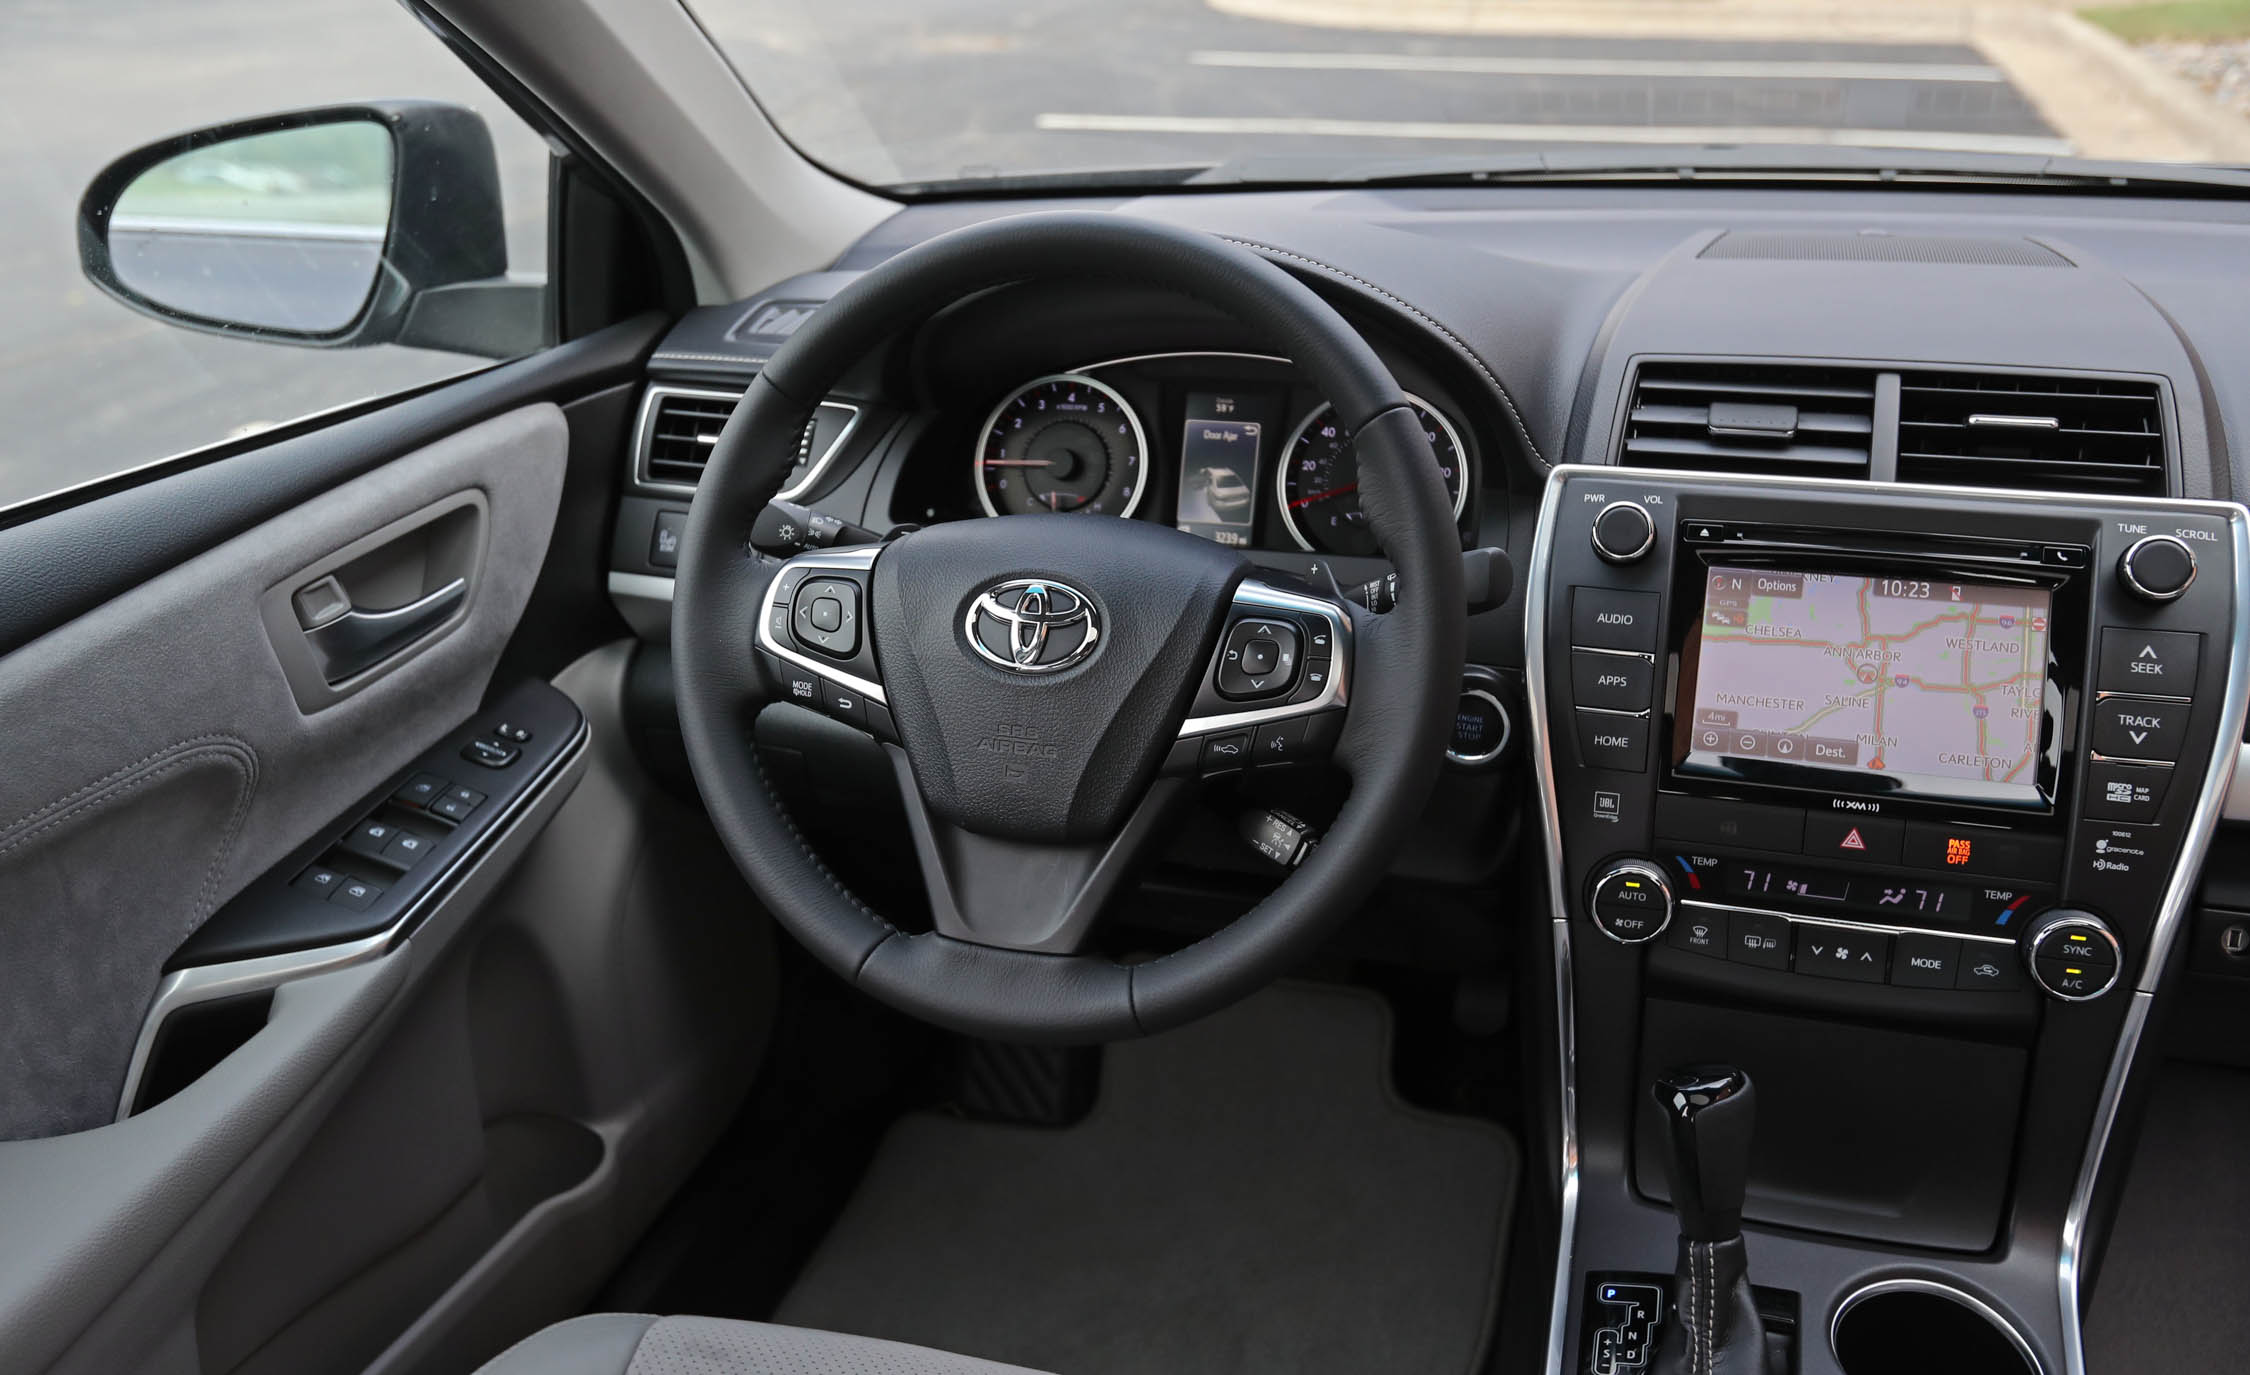 2017 Toyota Camry Interior View Steering Wheel (Photo 25 of 37)